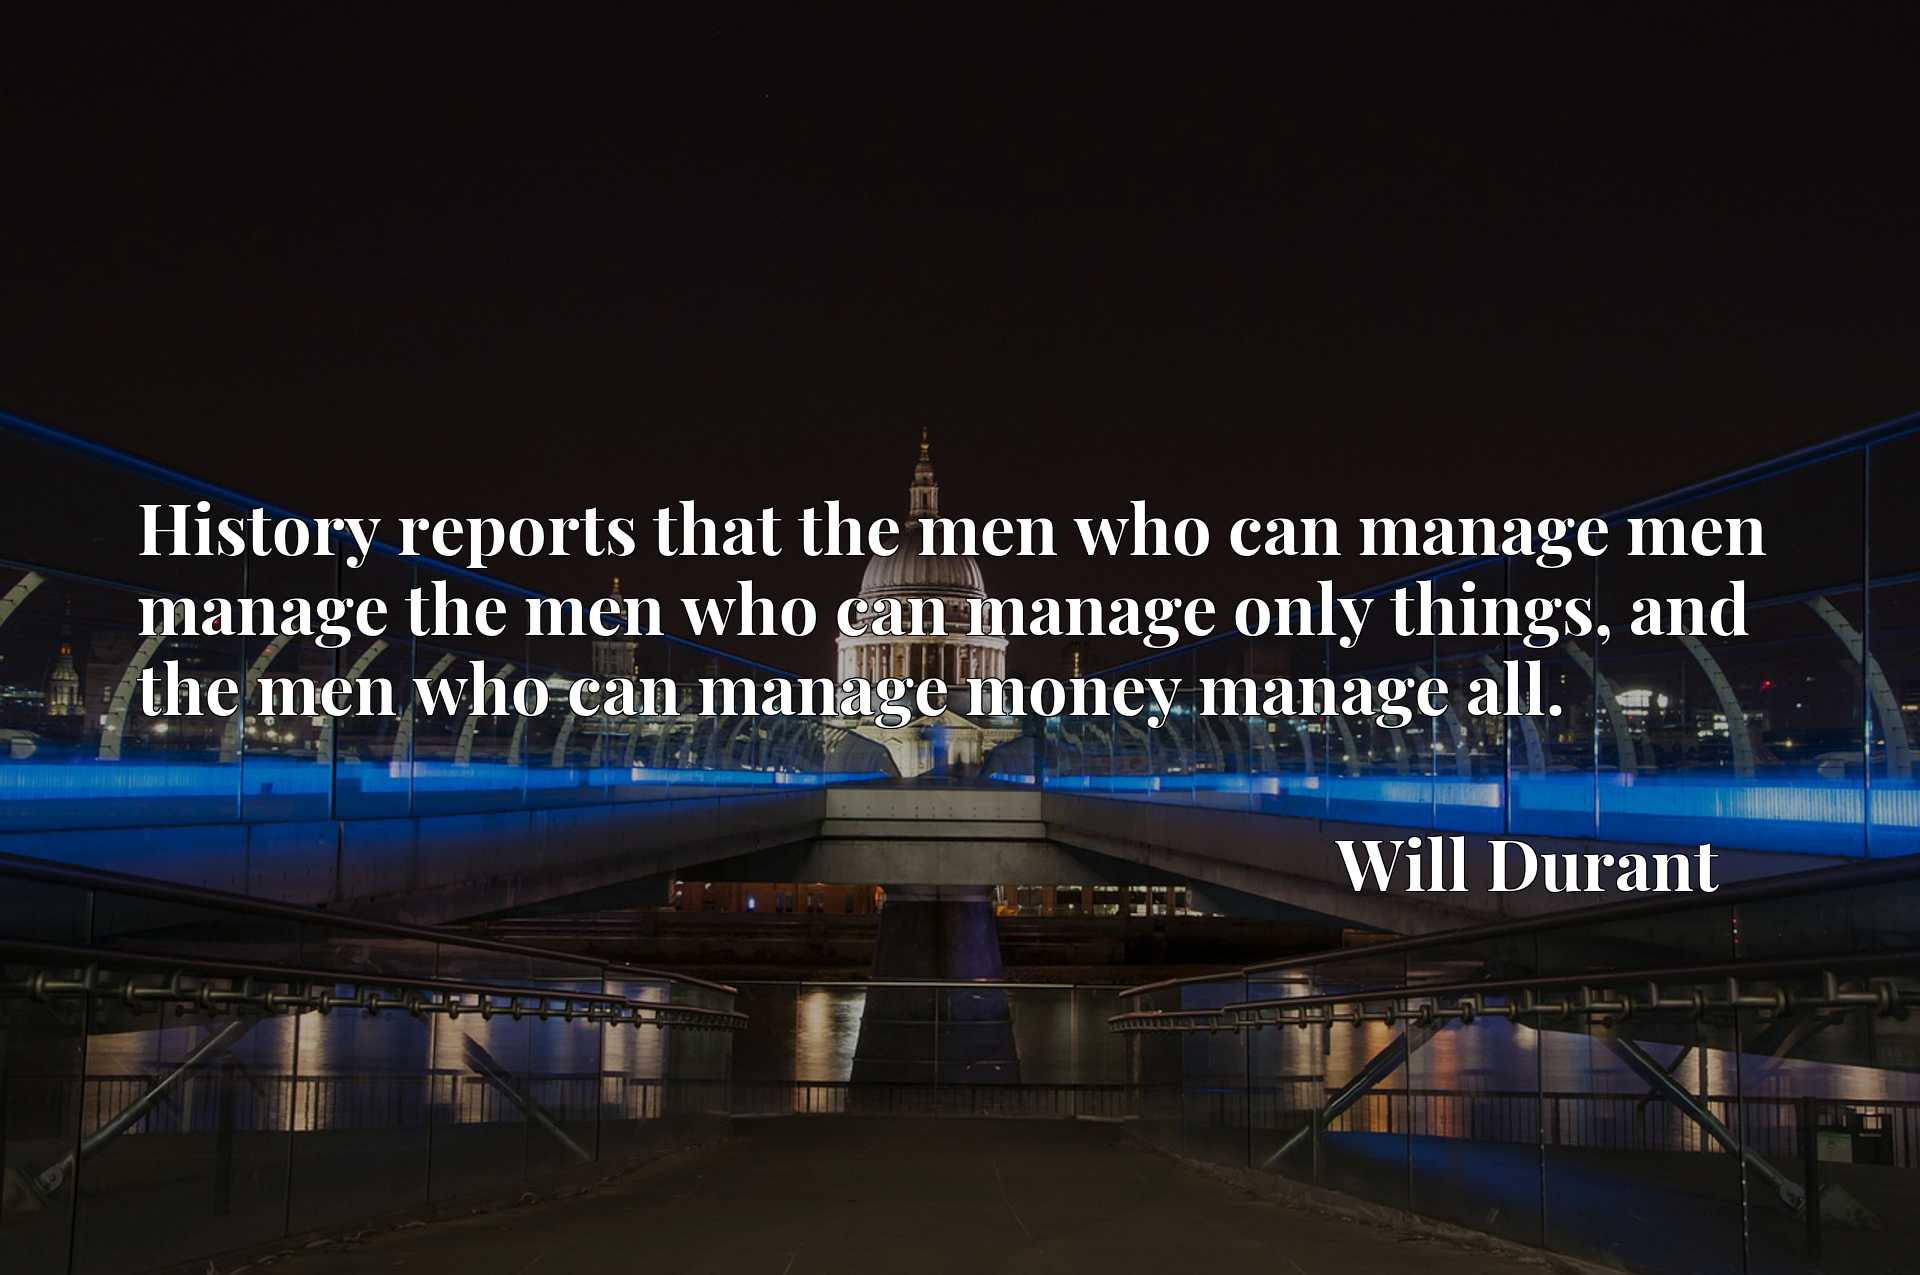 History reports that the men who can manage men manage the men who can manage only things, and the men who can manage money manage all.